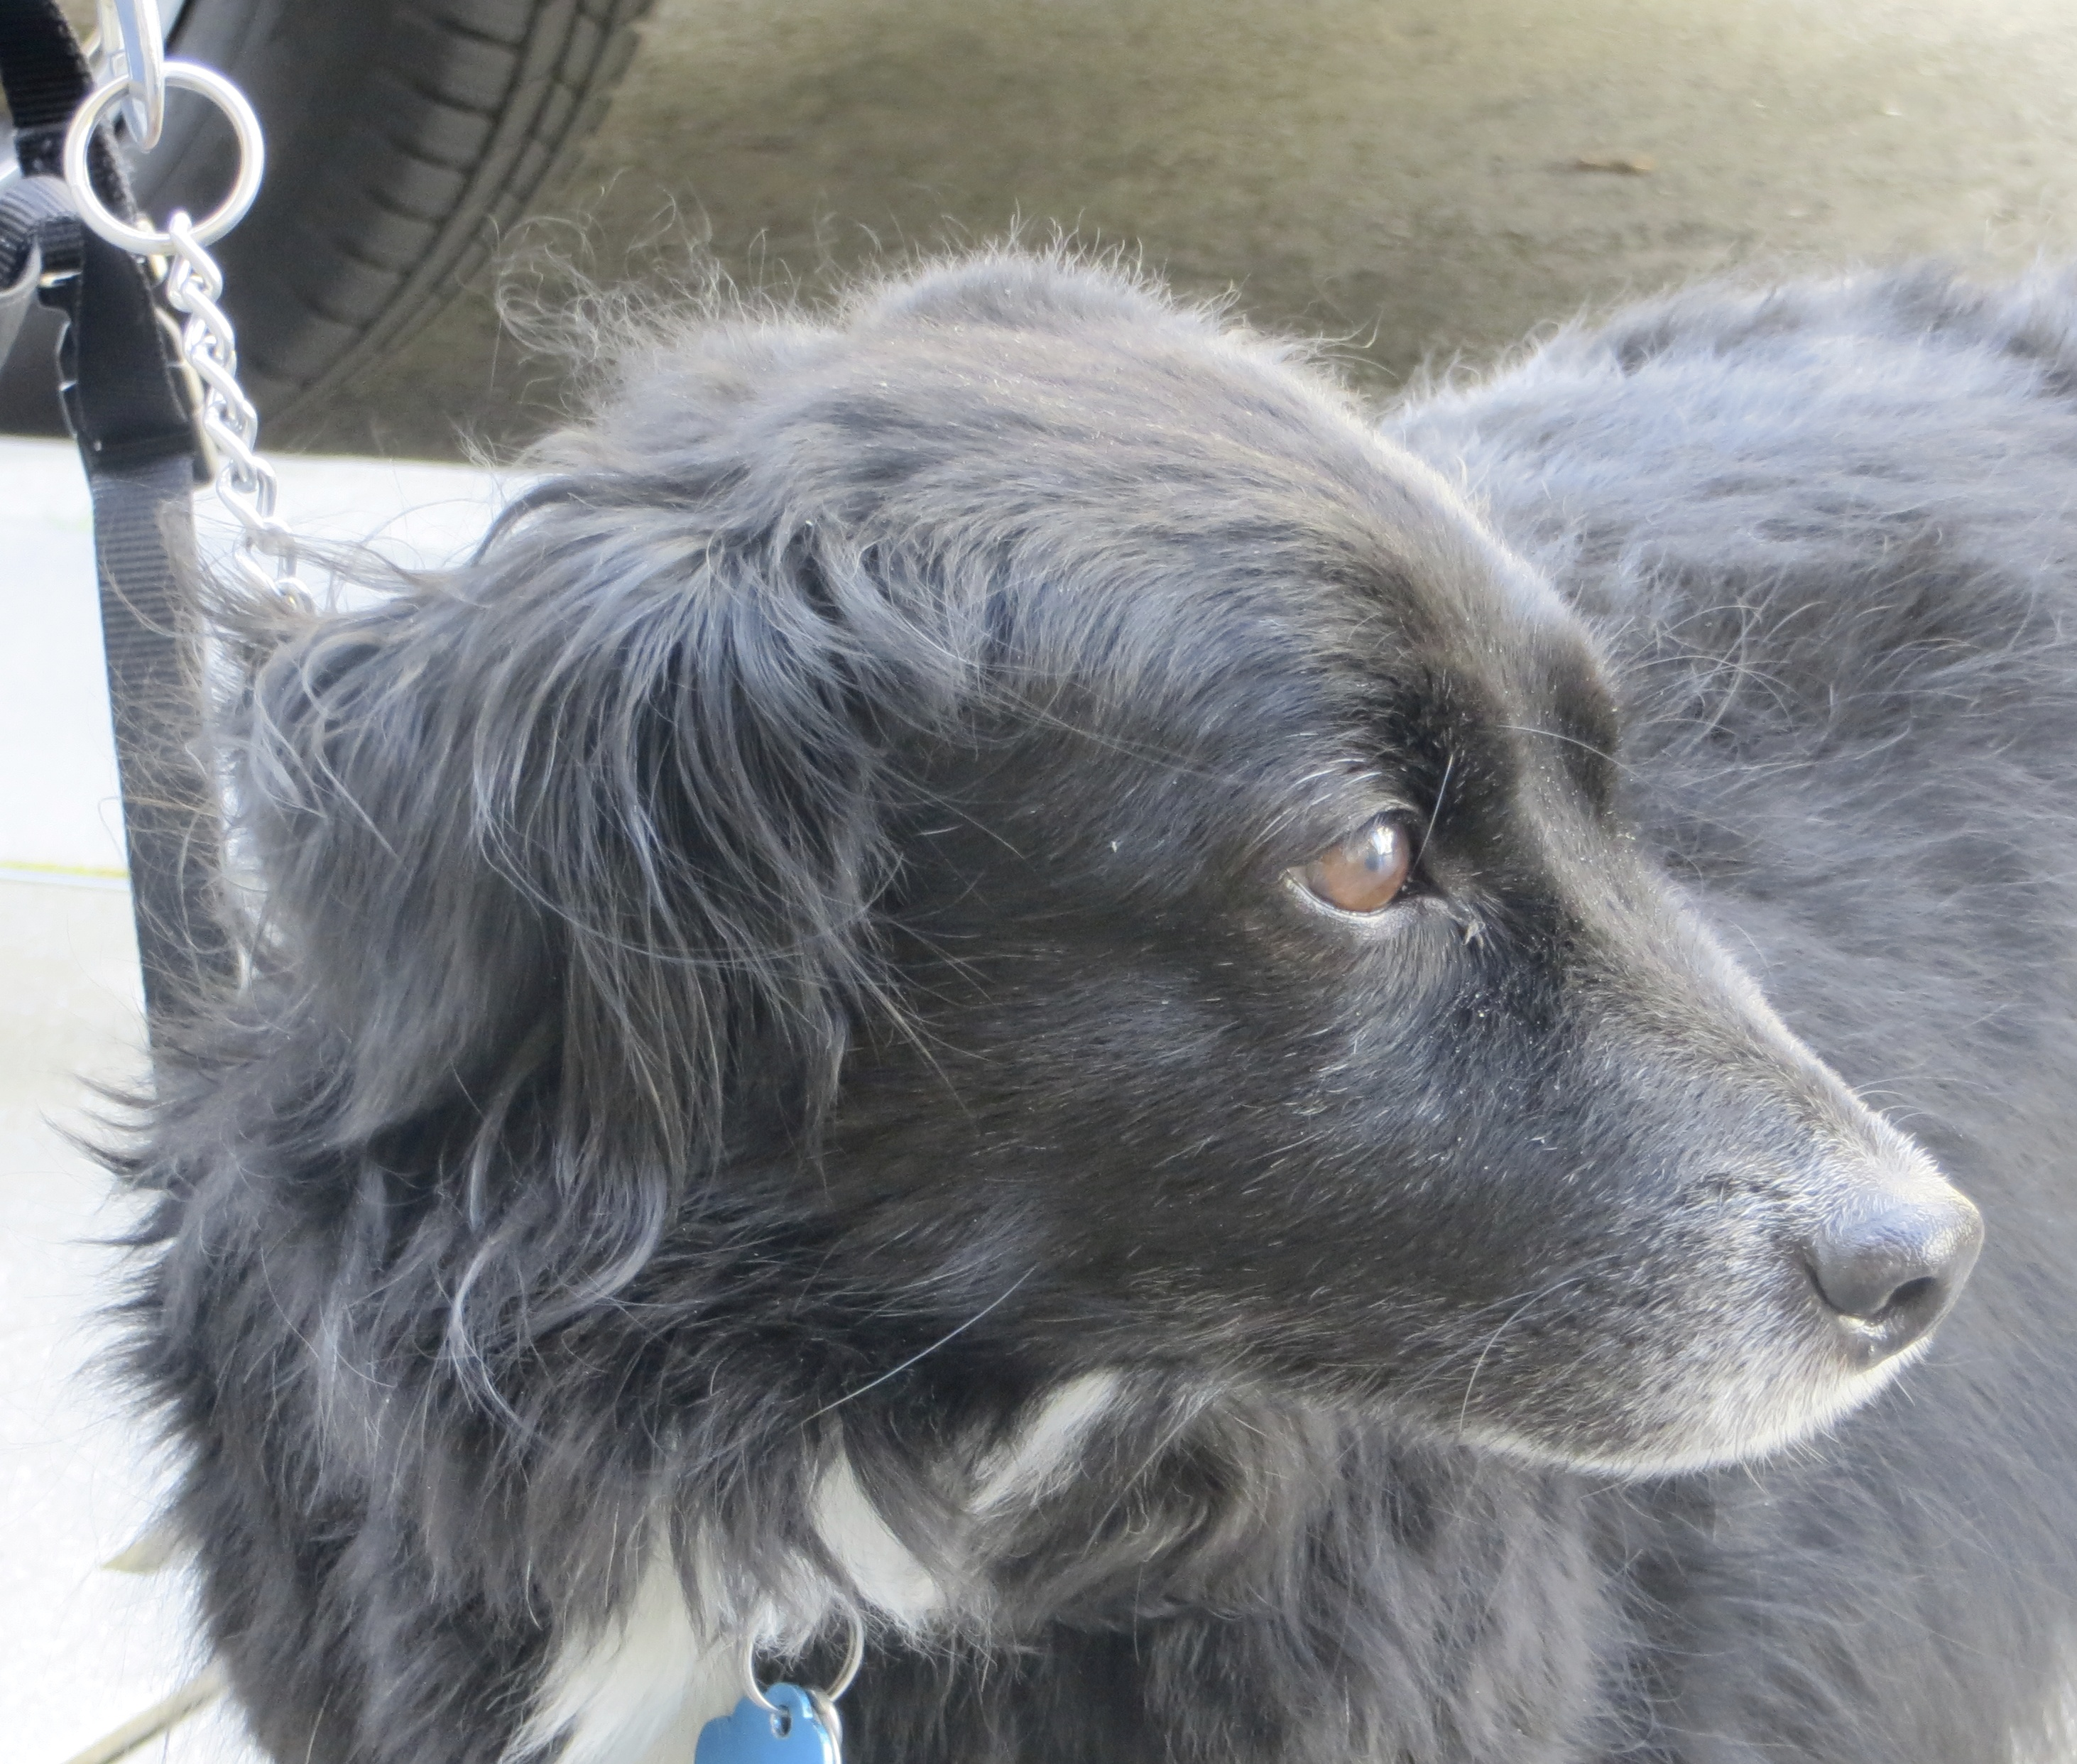 Voguish Black Border Collie Mix Short A Brown S All If You Change Your Be Right Corgi Border Collie Mix Sale Corgi Border Collie Mix Traits bark post Corgi Border Collie Mix